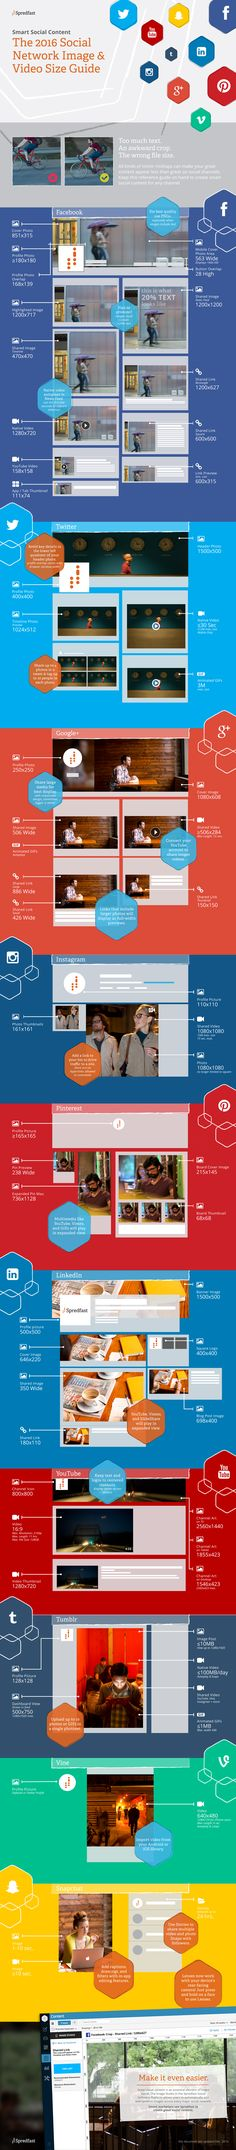 The 2017 Social Network Image & Video Size Guide | Spredfast